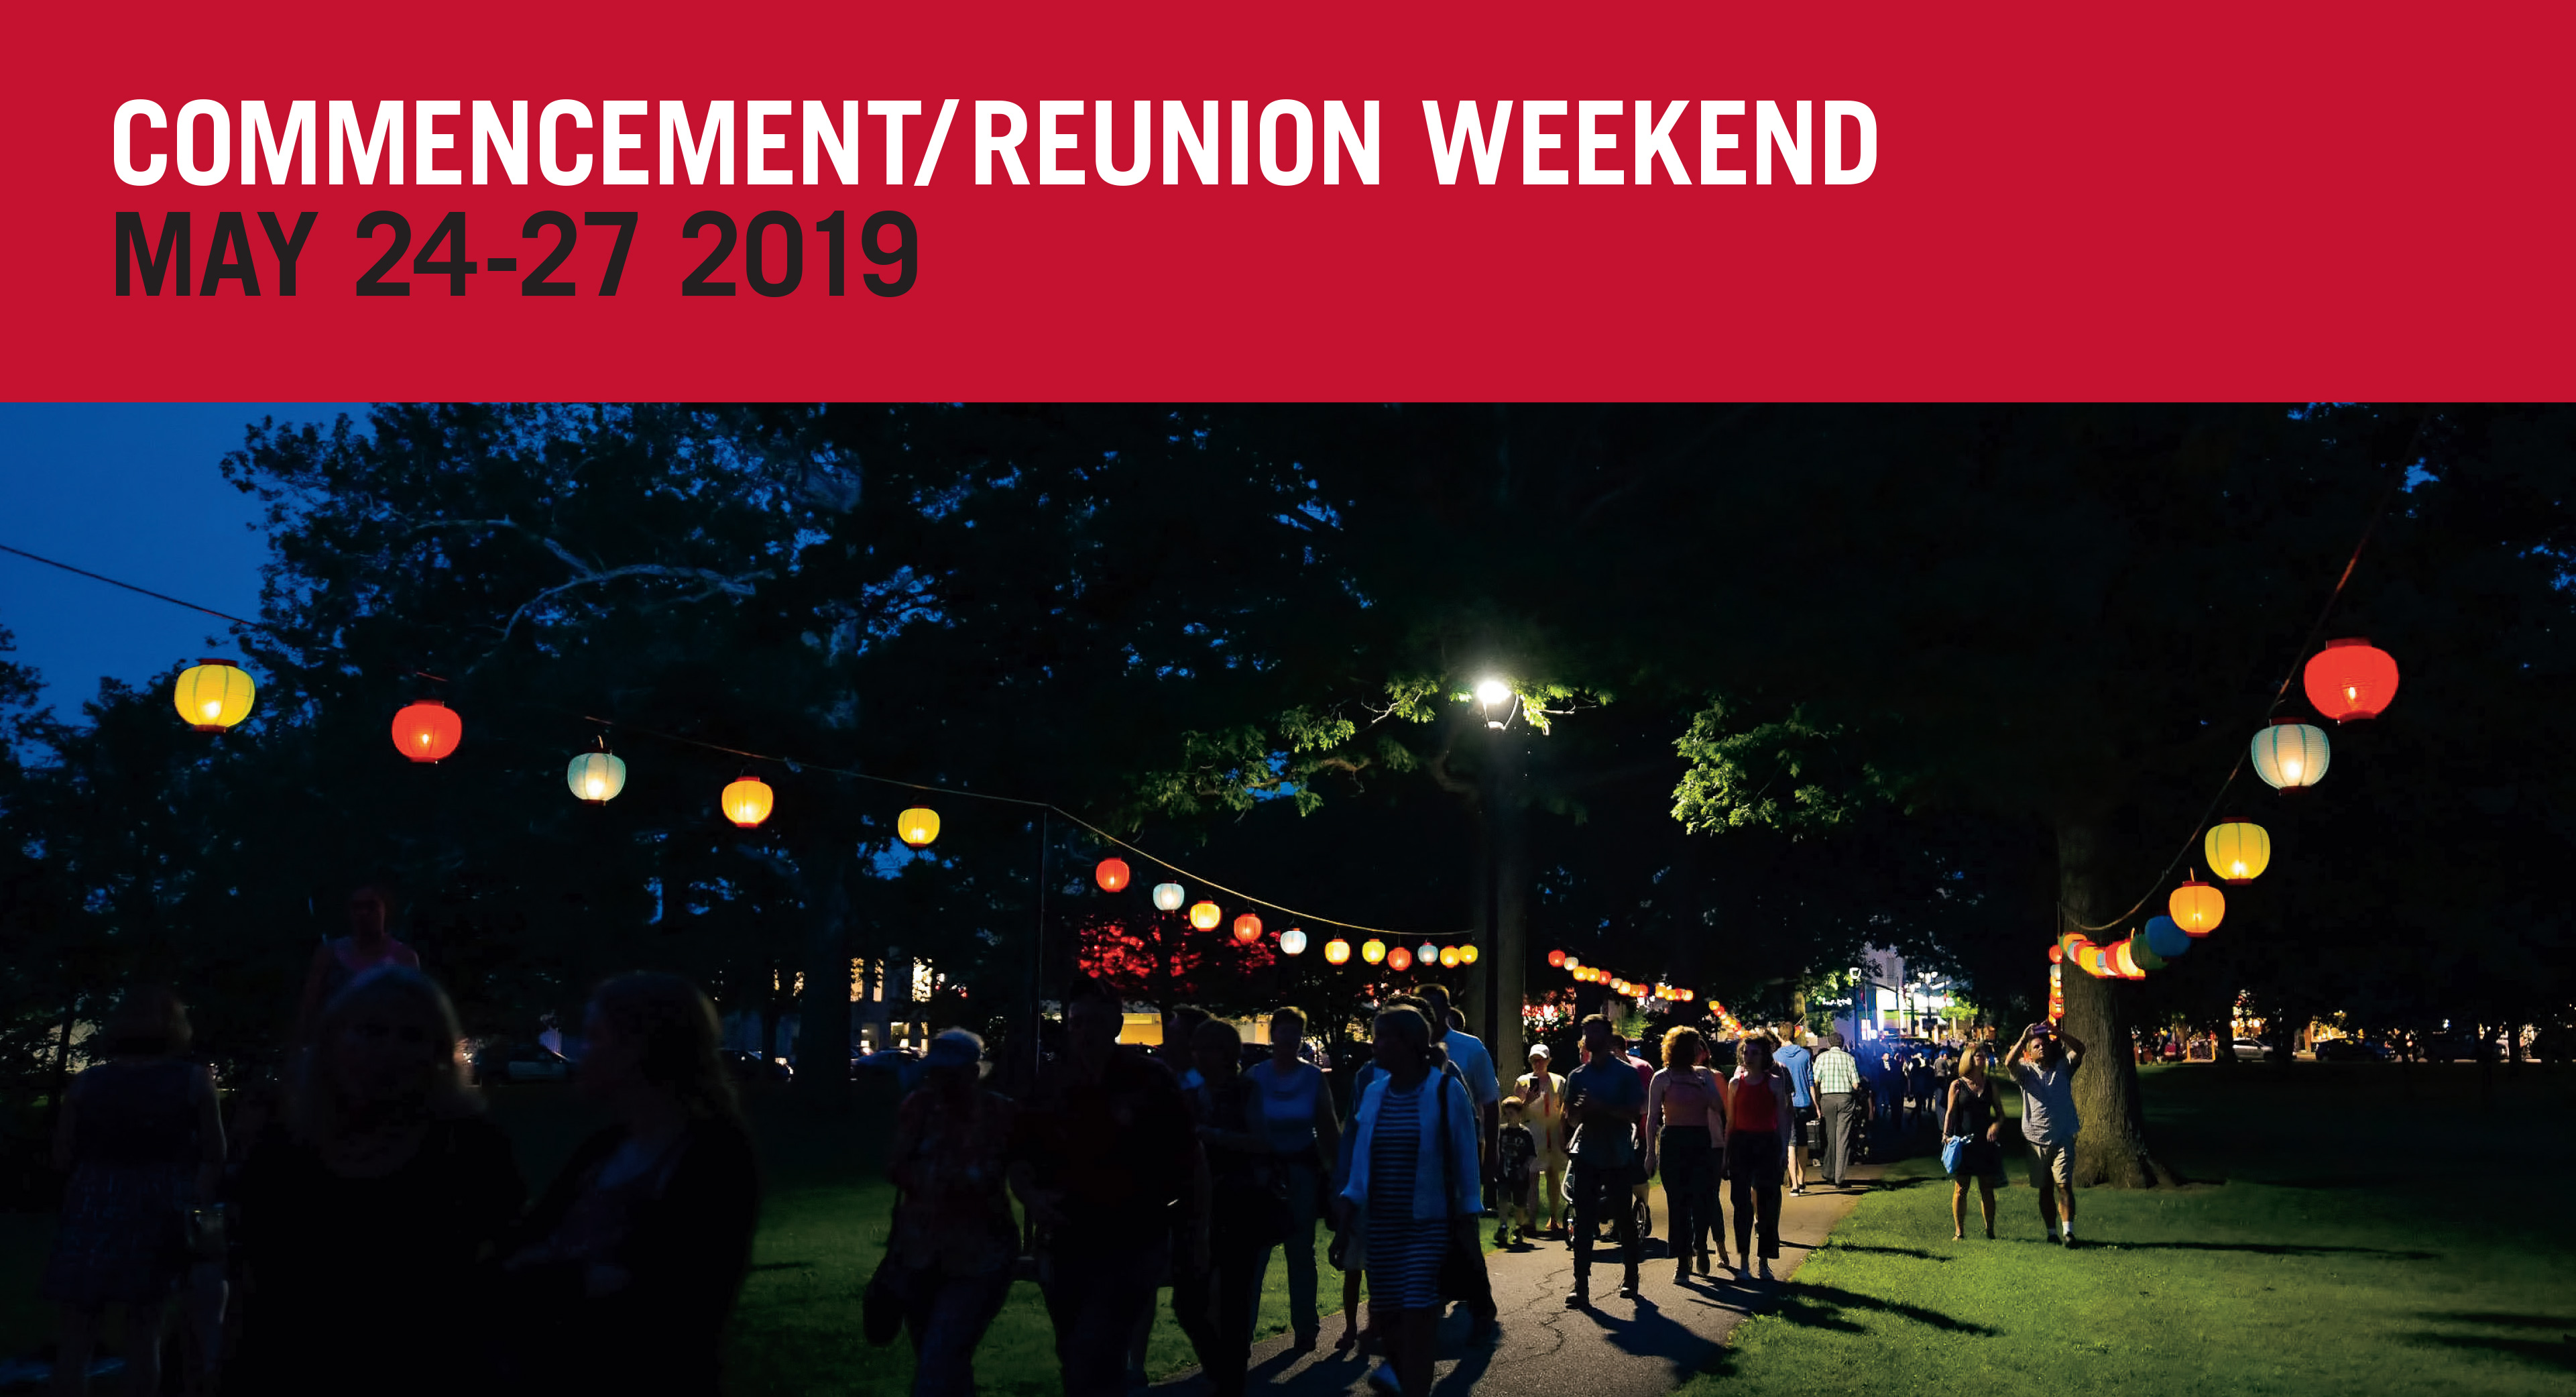 Oberlin College Commencement/Reunion Weekend 2019